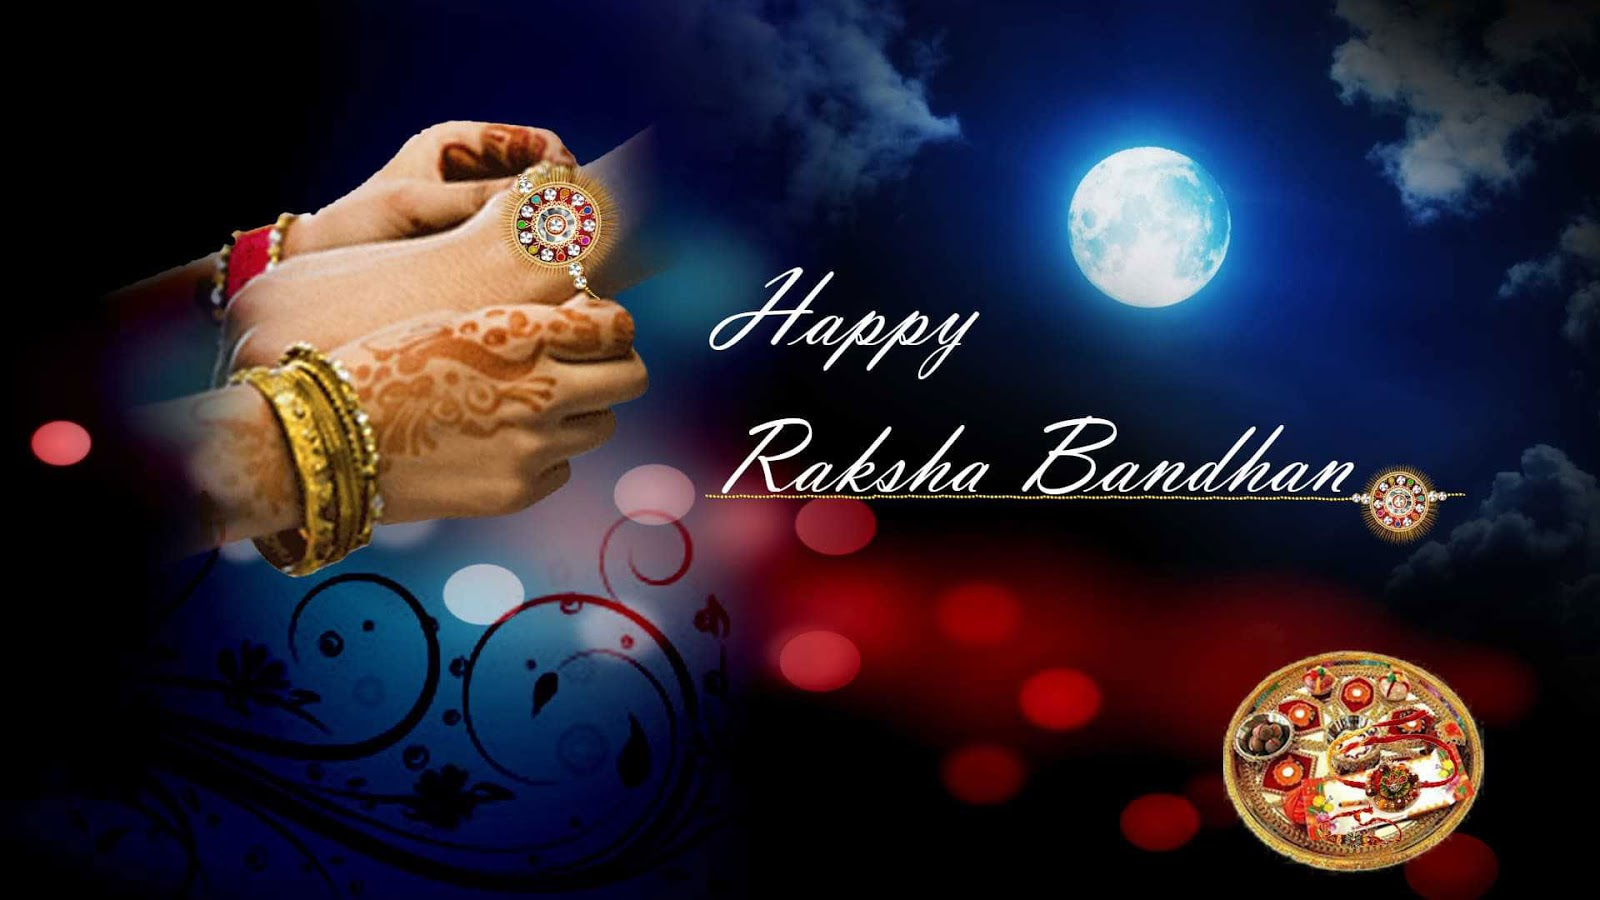 Best Happy Rakhi Raksha Bandhan Image Greetings 2019 Free